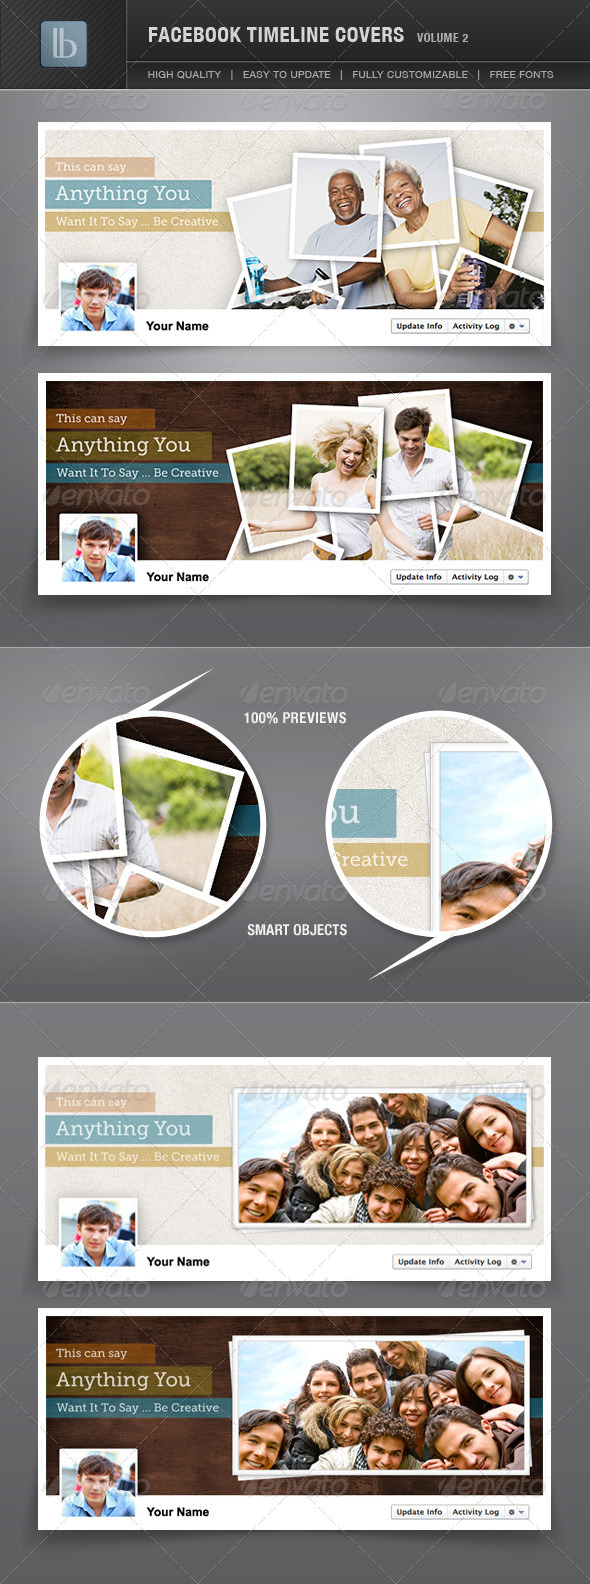 GraphicRiver Facebook Timeline Covers Volume 2 1280617